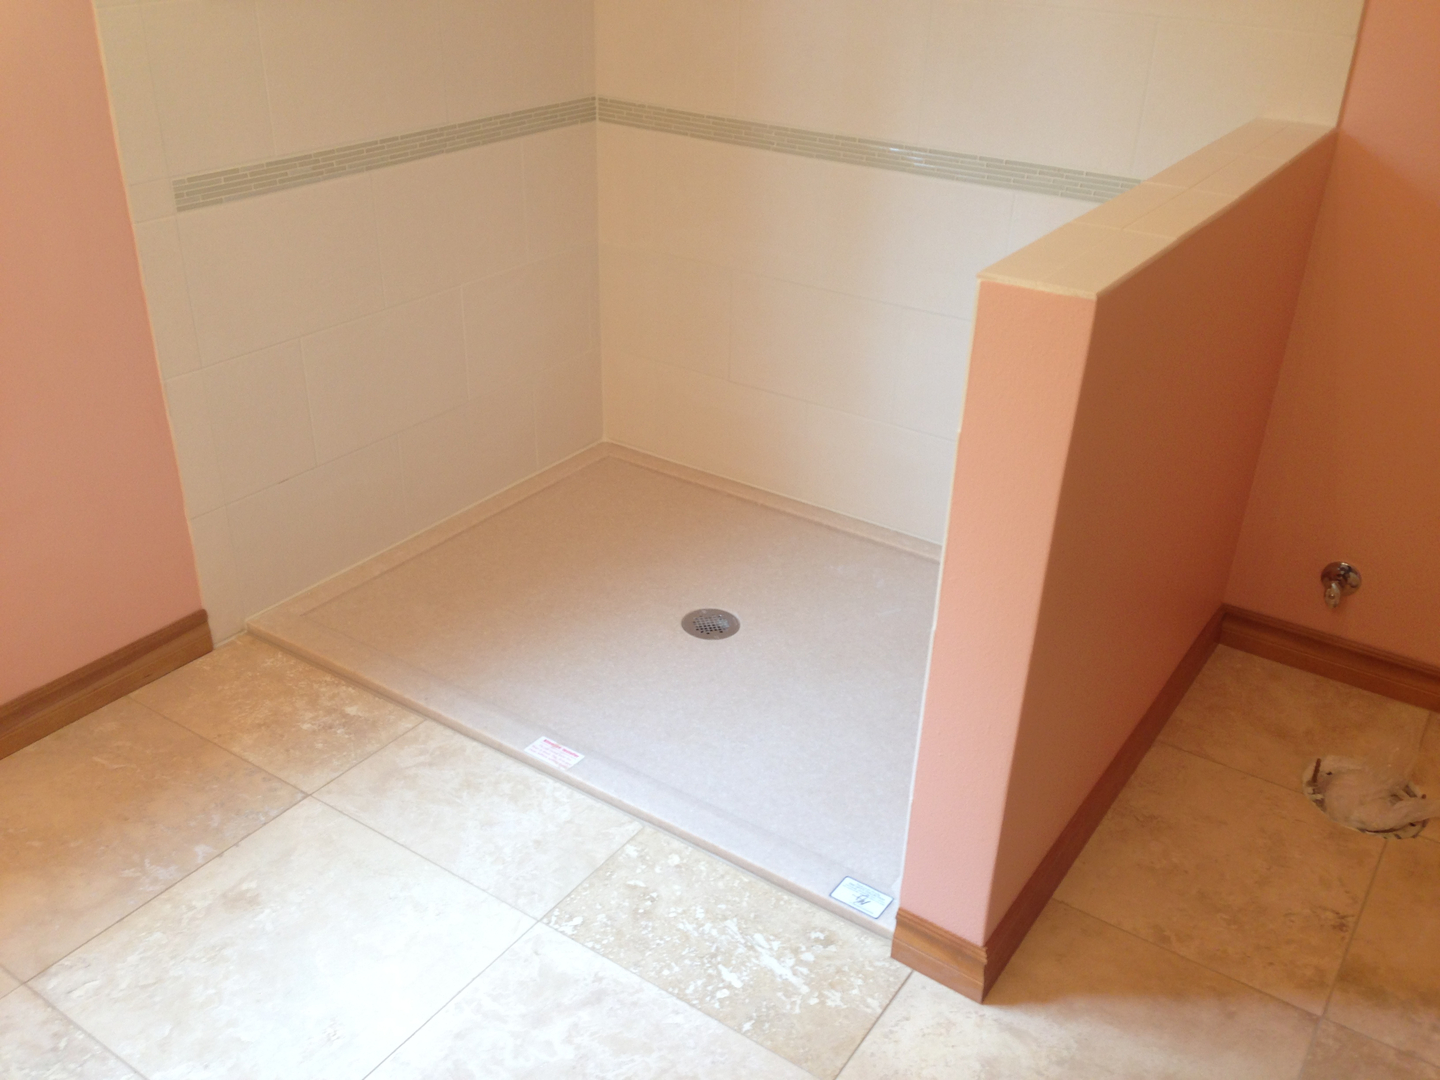 Tile, Paint and Trim